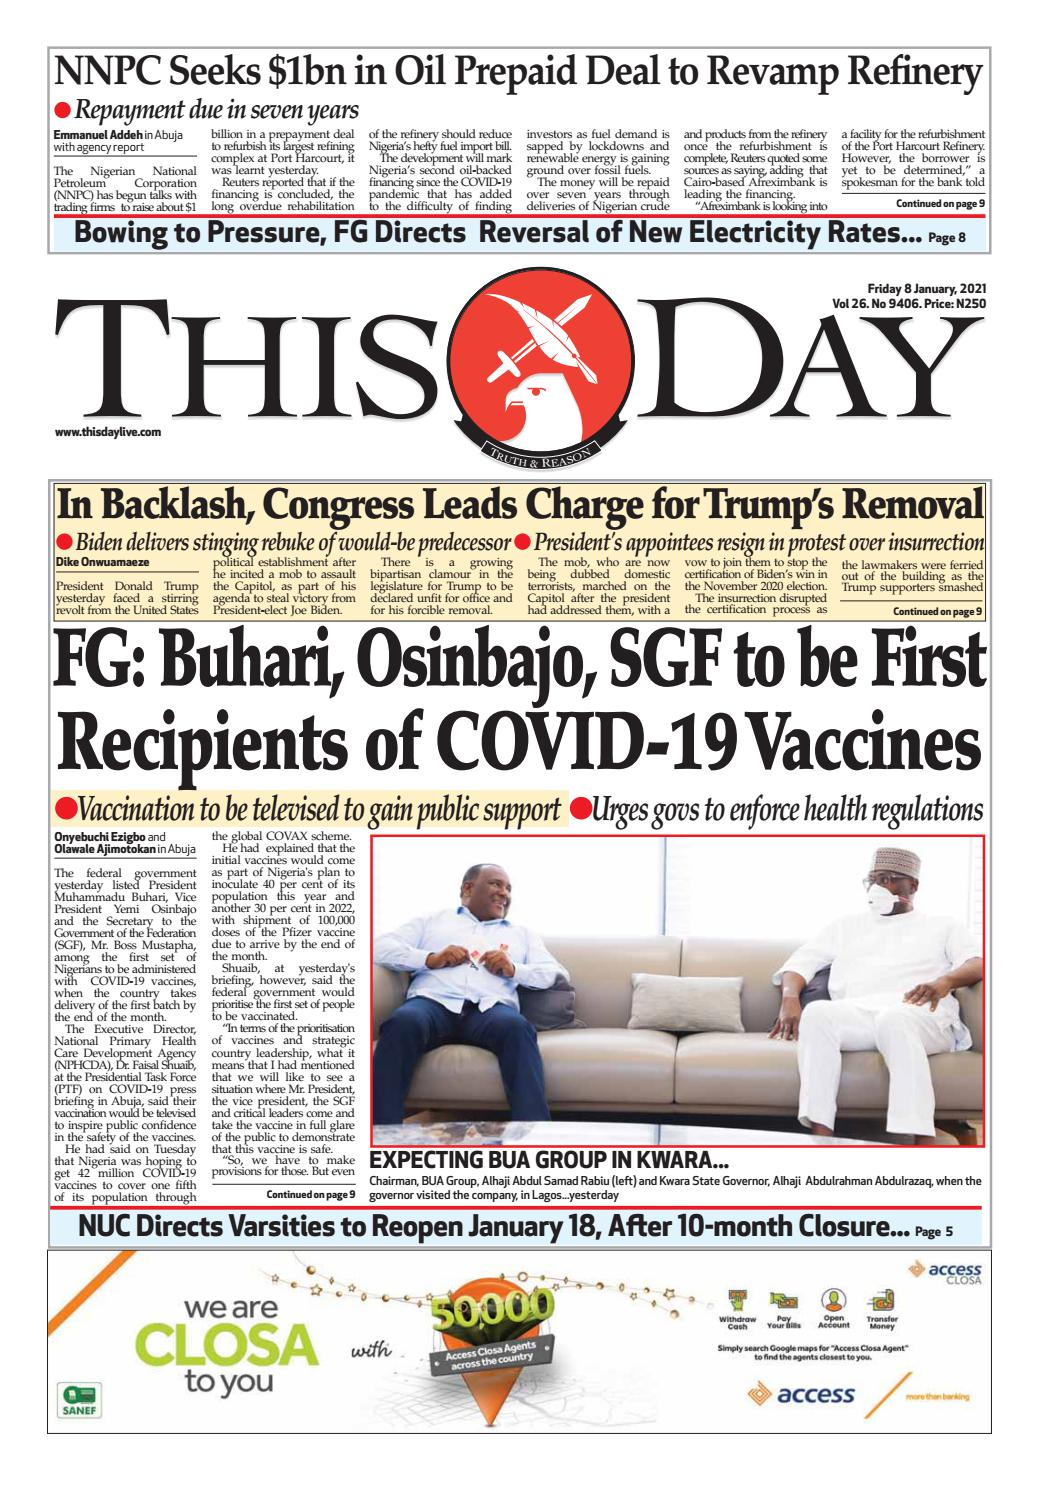 Friday 8th January 2021 By Thisday Newspapers Ltd Issuu